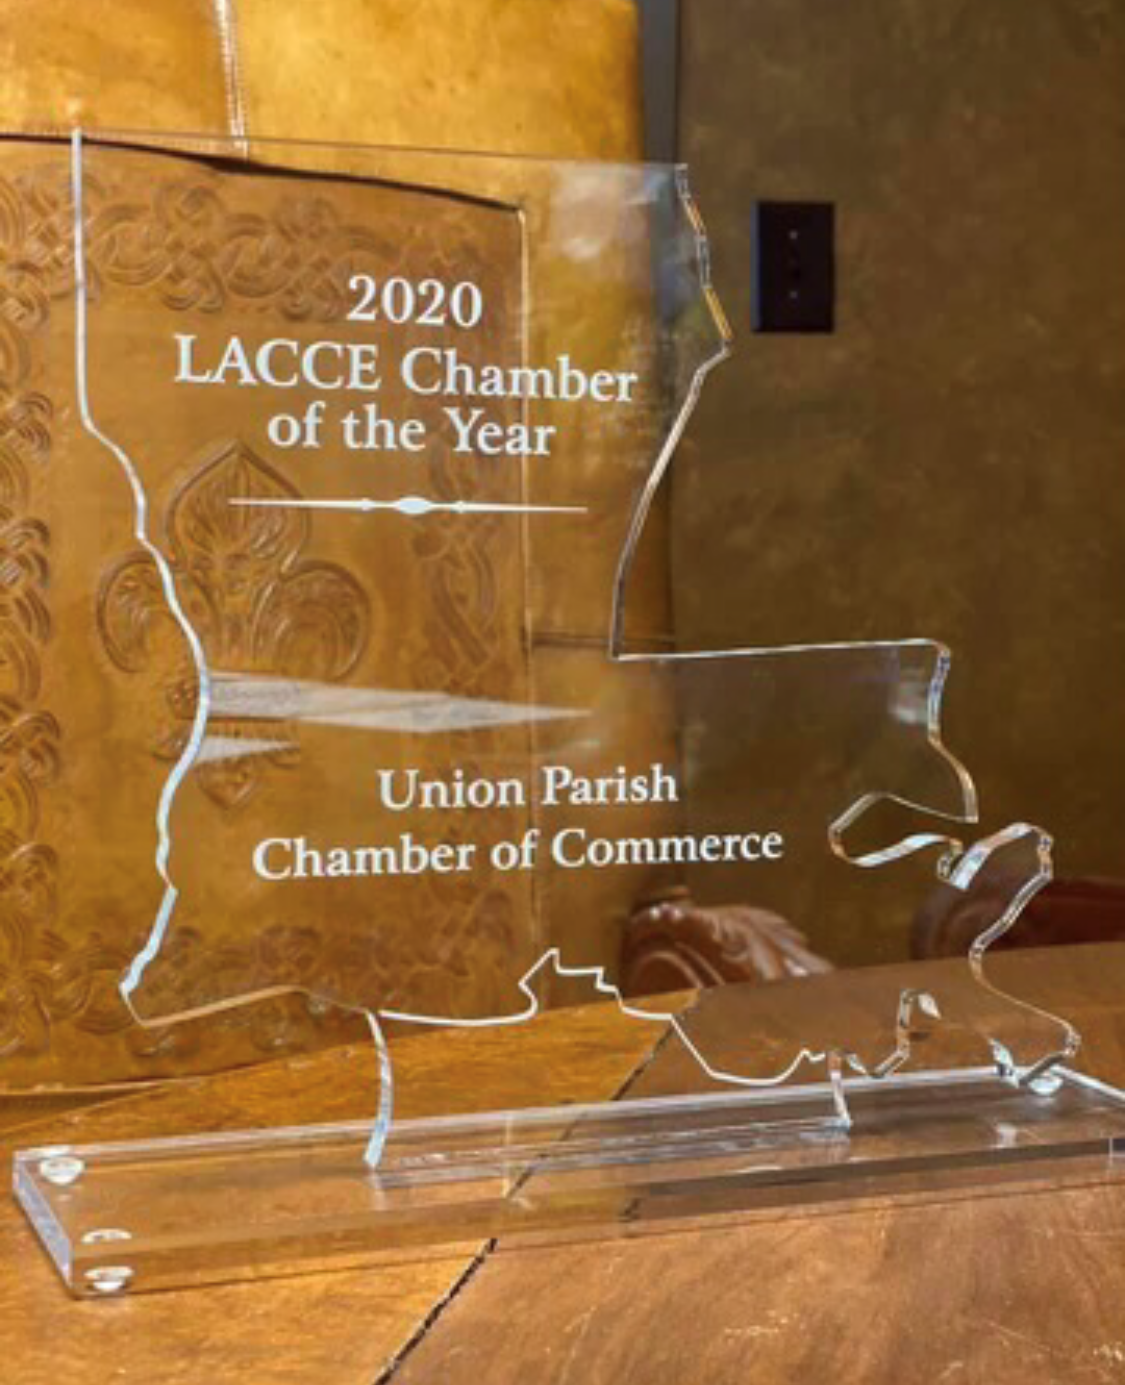 2020 LACCE Chamber of Year for Louisiana